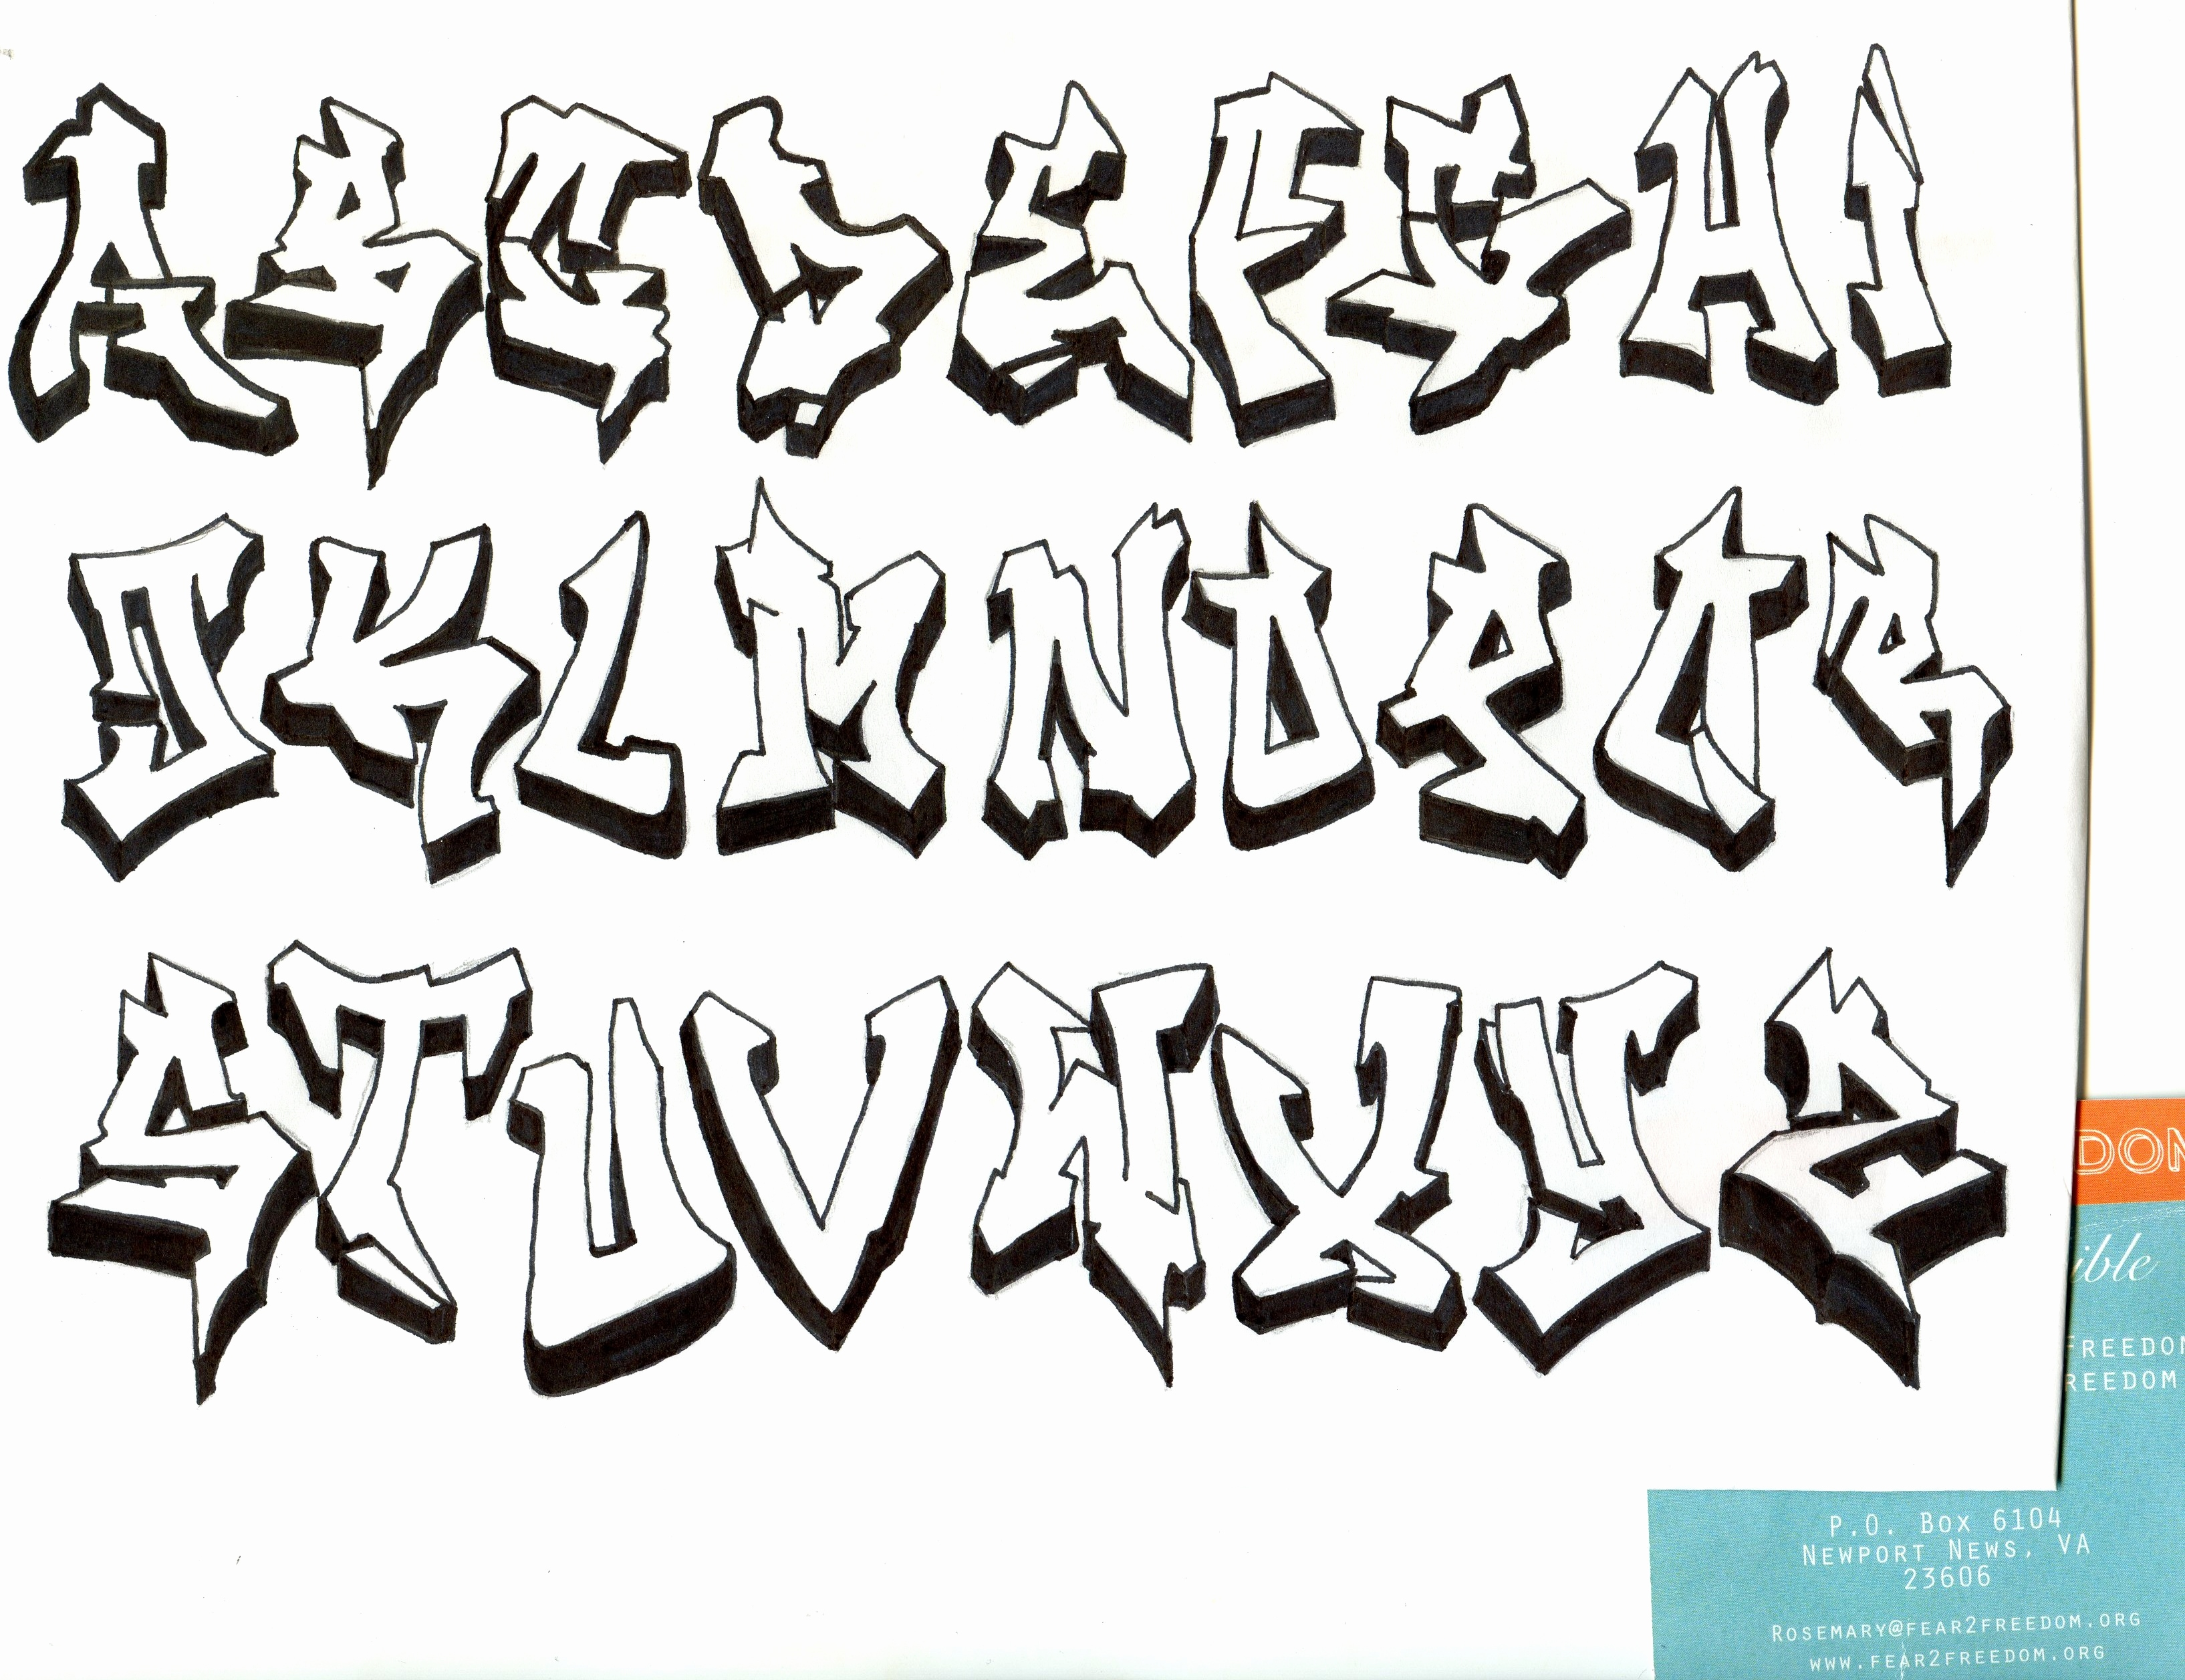 Graffiti Schrift 3d Luxus Graffiti Alphabet 3d Wildstyle Archidev